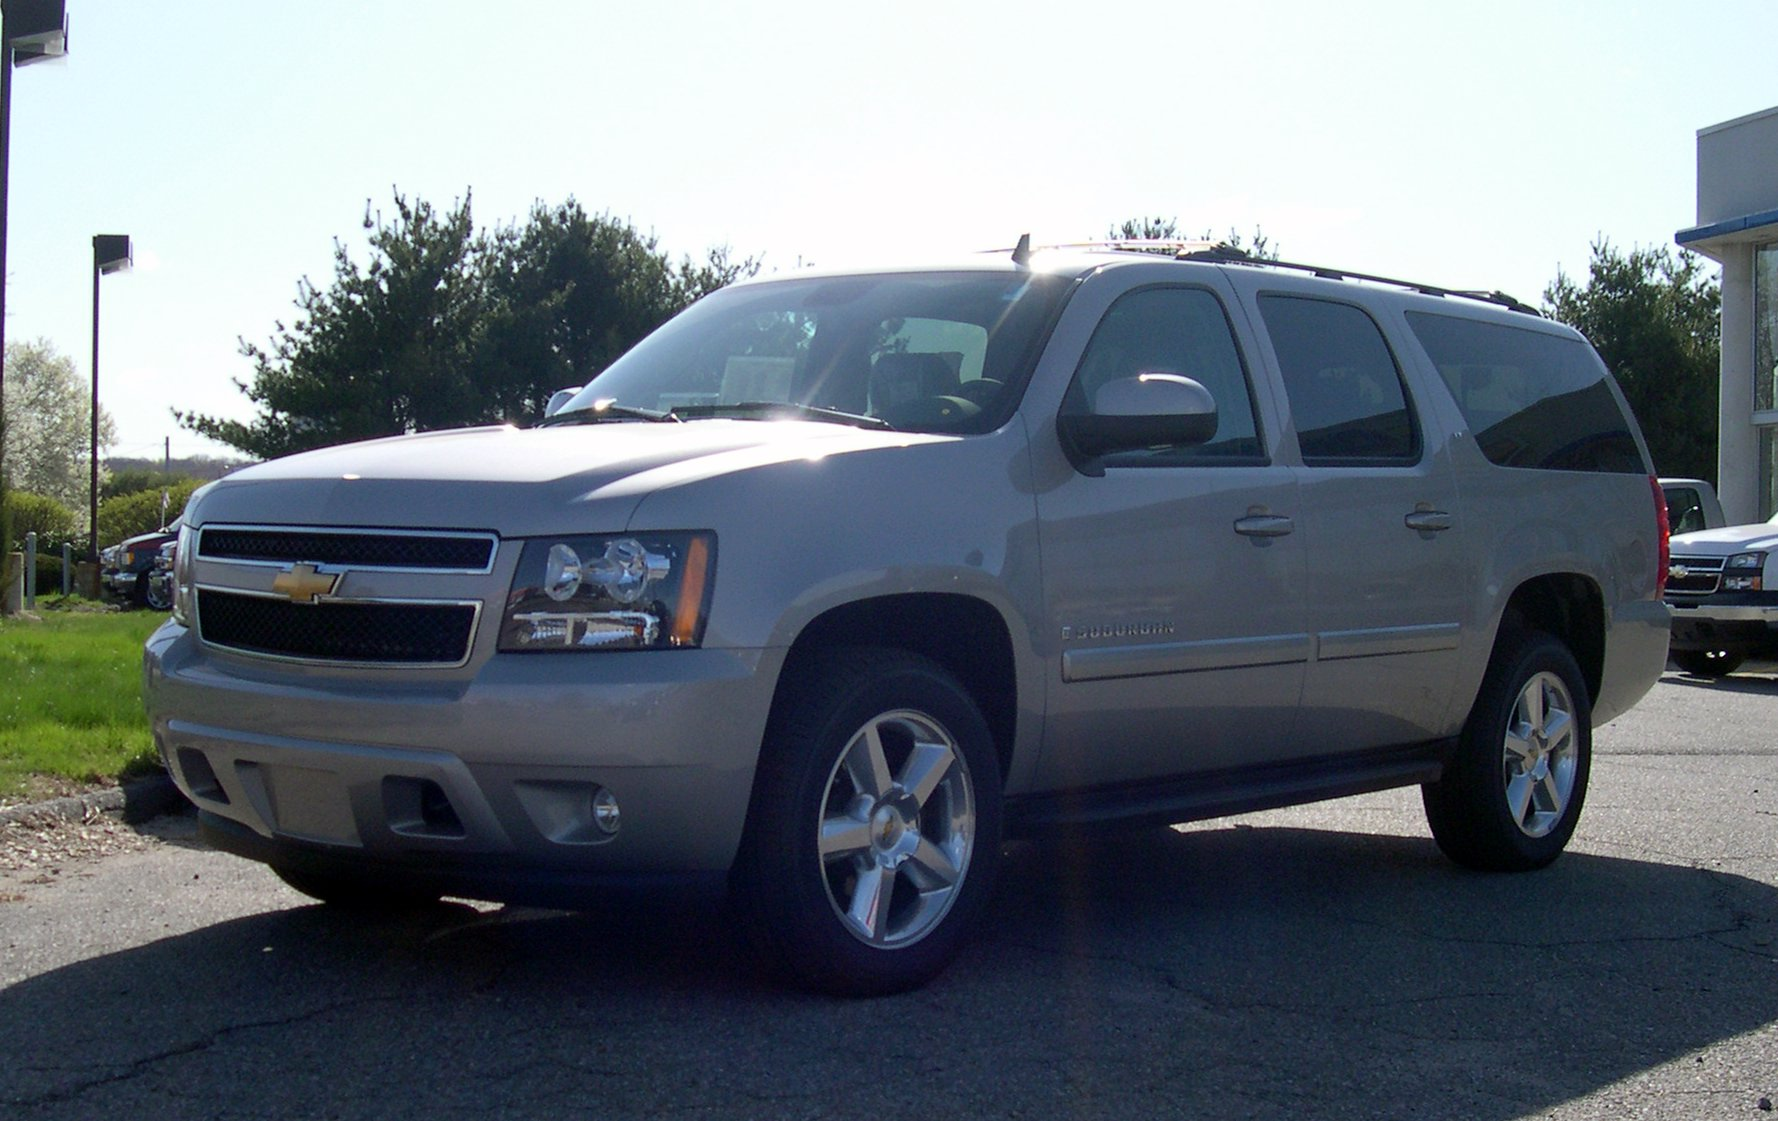 2007 Chevrolet Suburban Wallpaper For Android